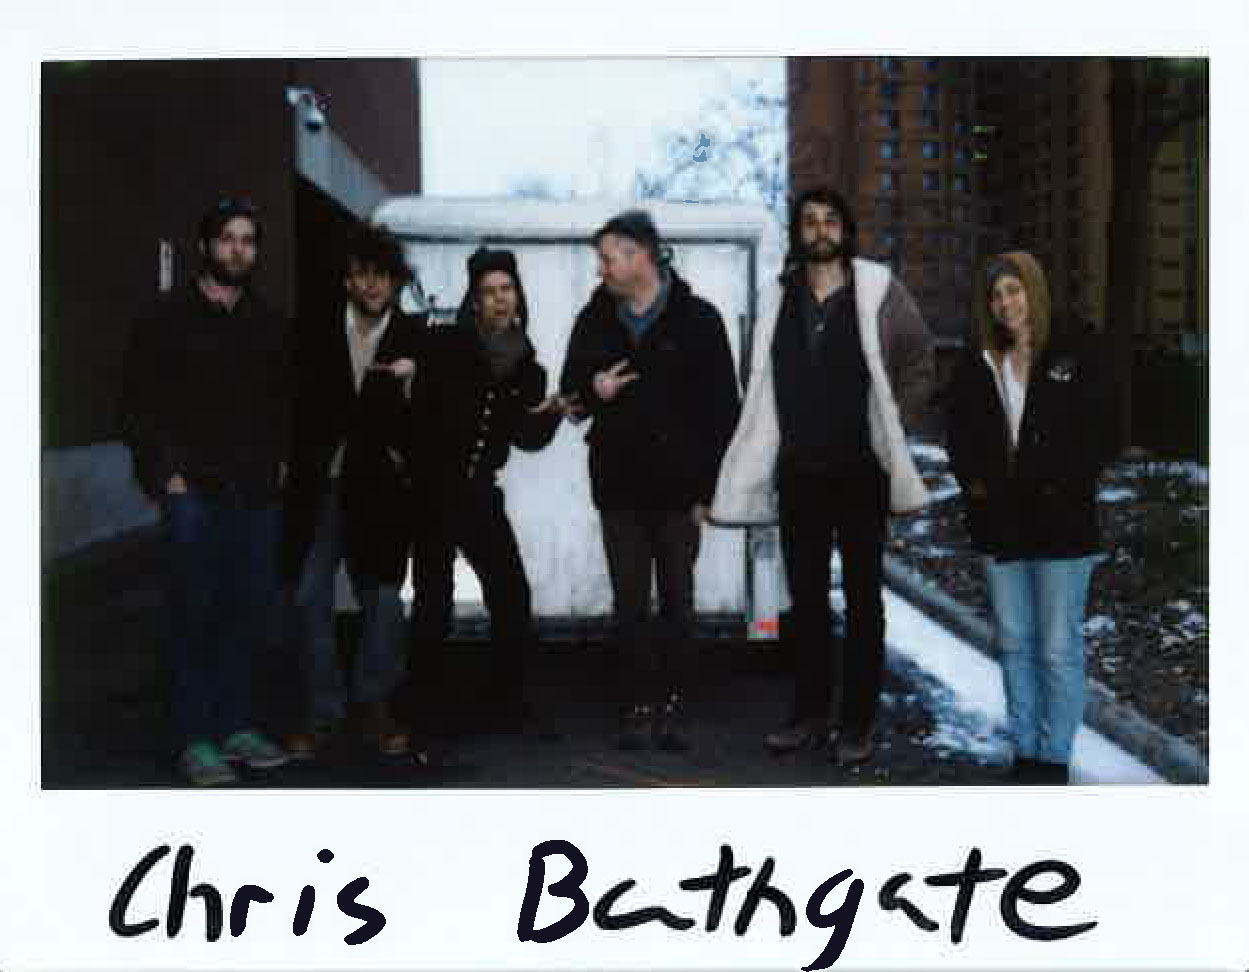 Chris Bathgate